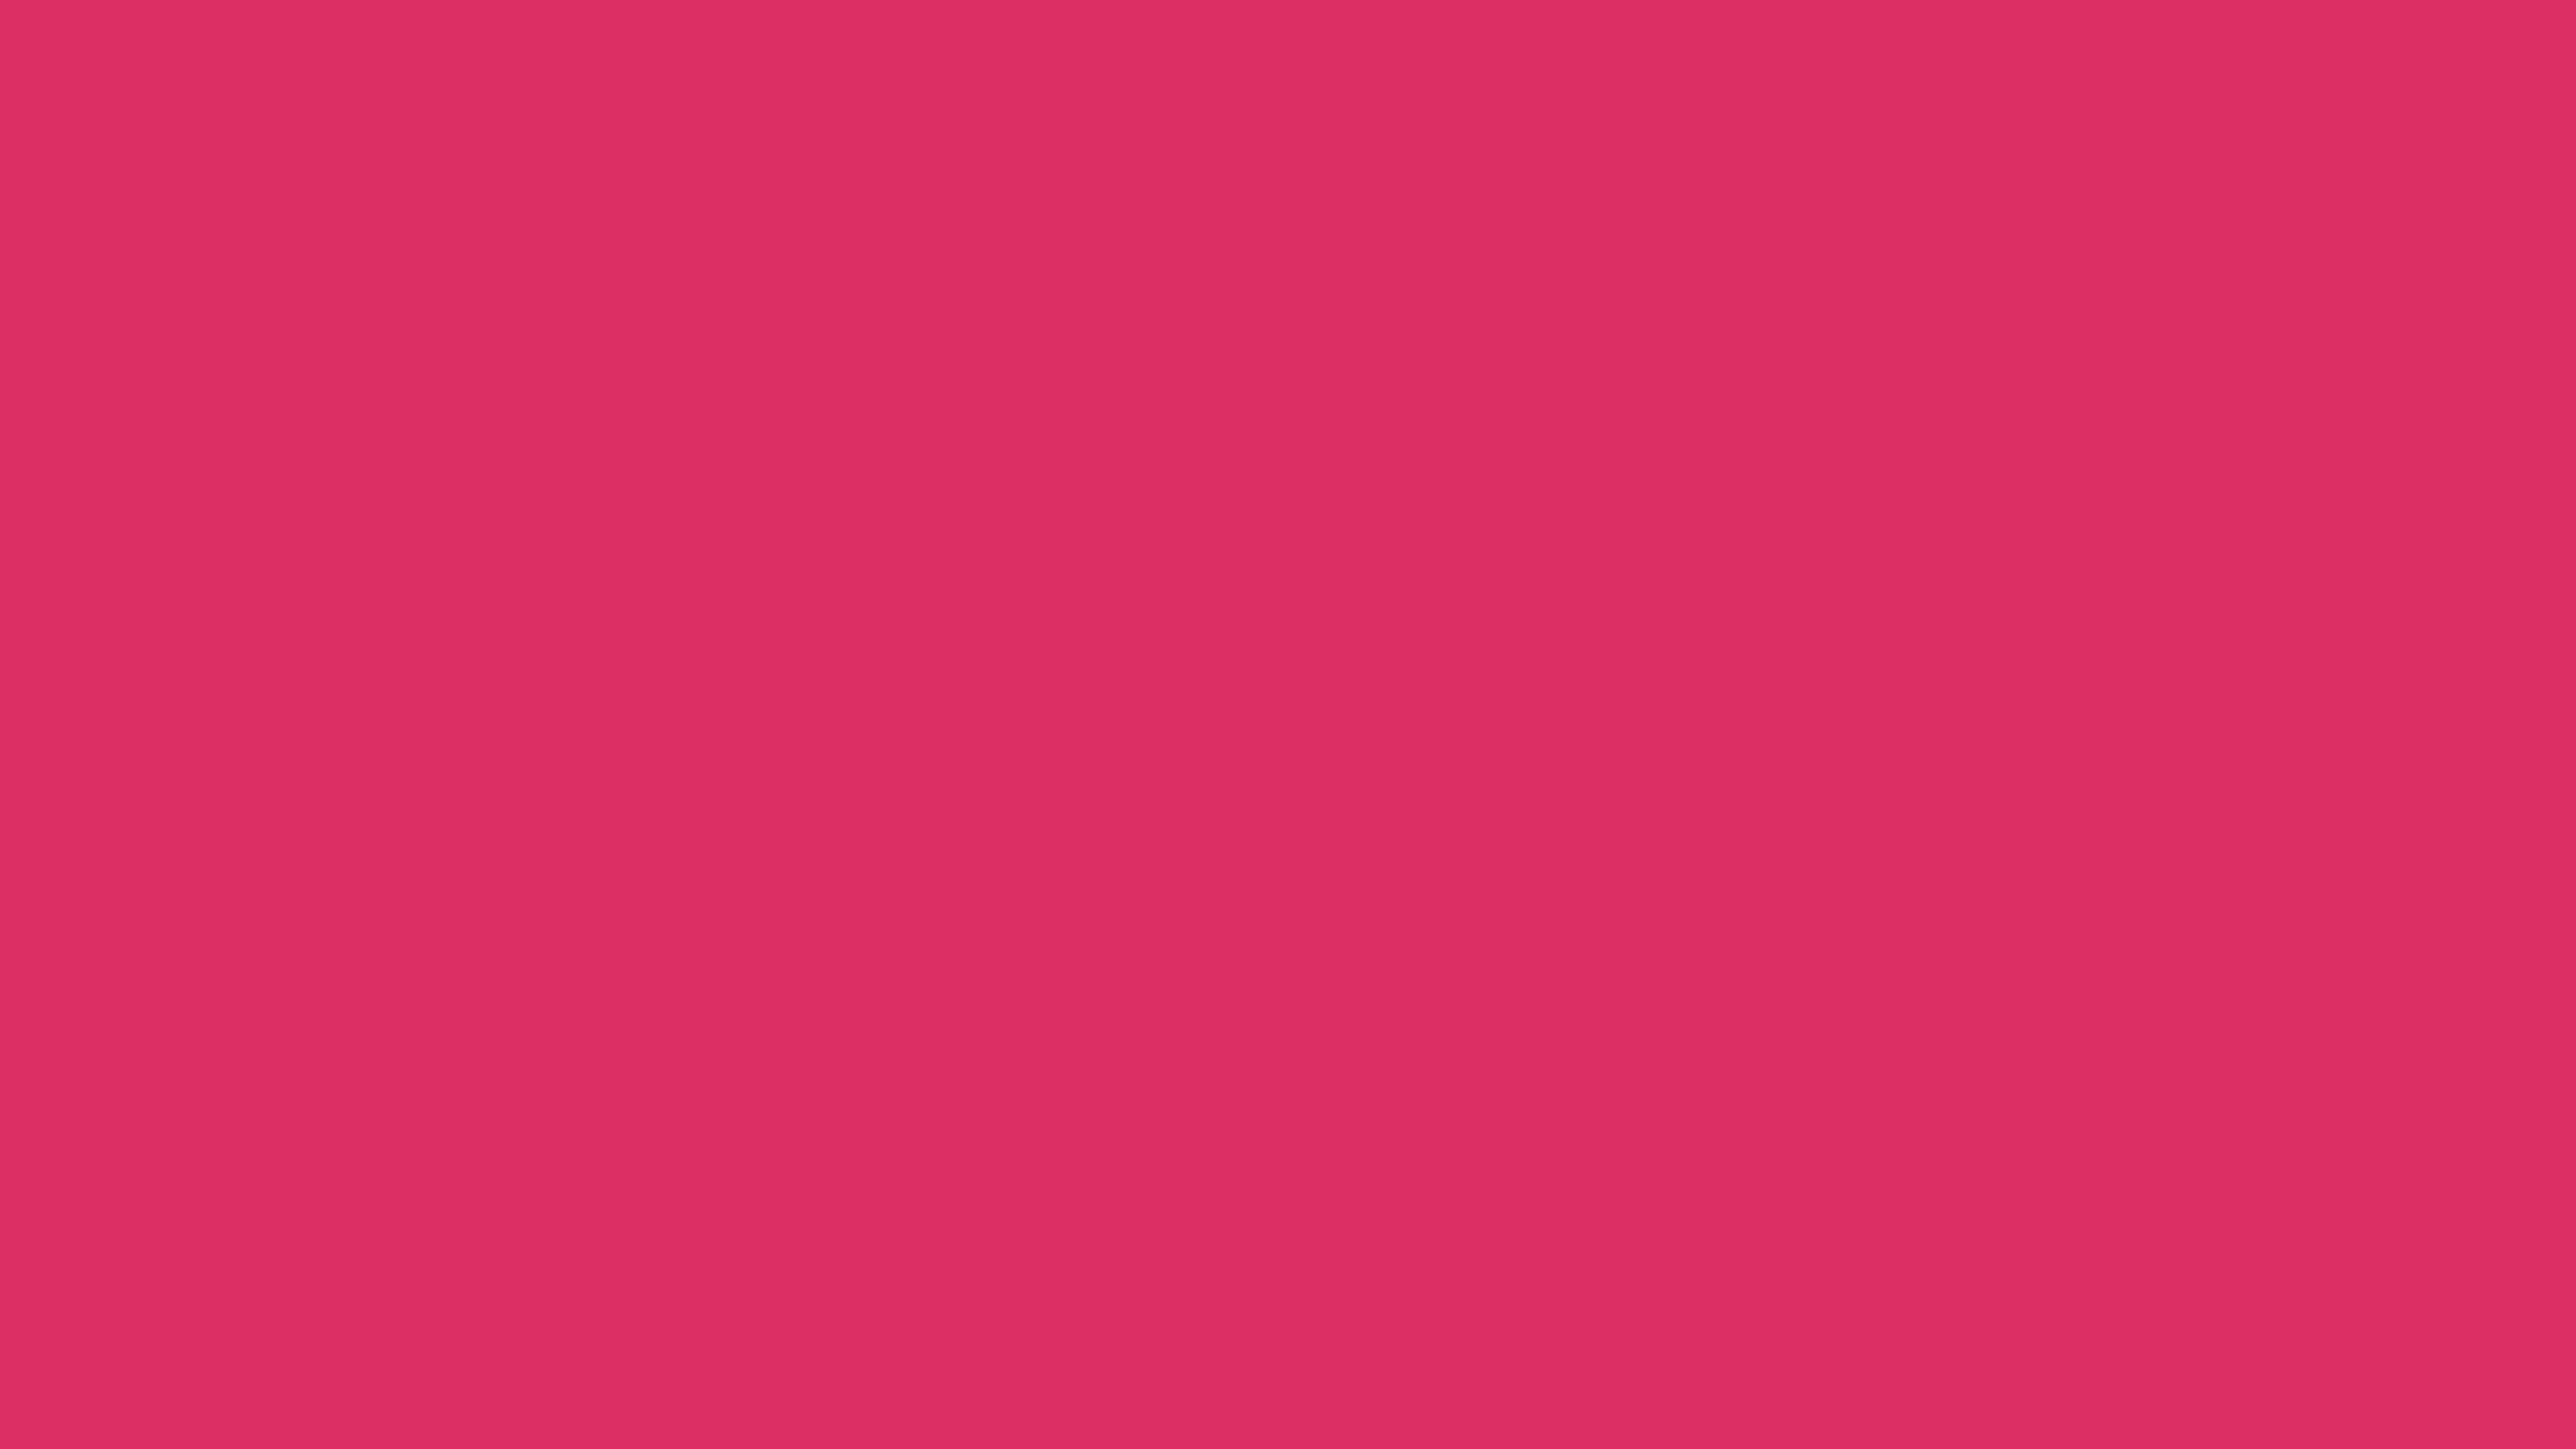 3840x2160 Cherry Solid Color Background